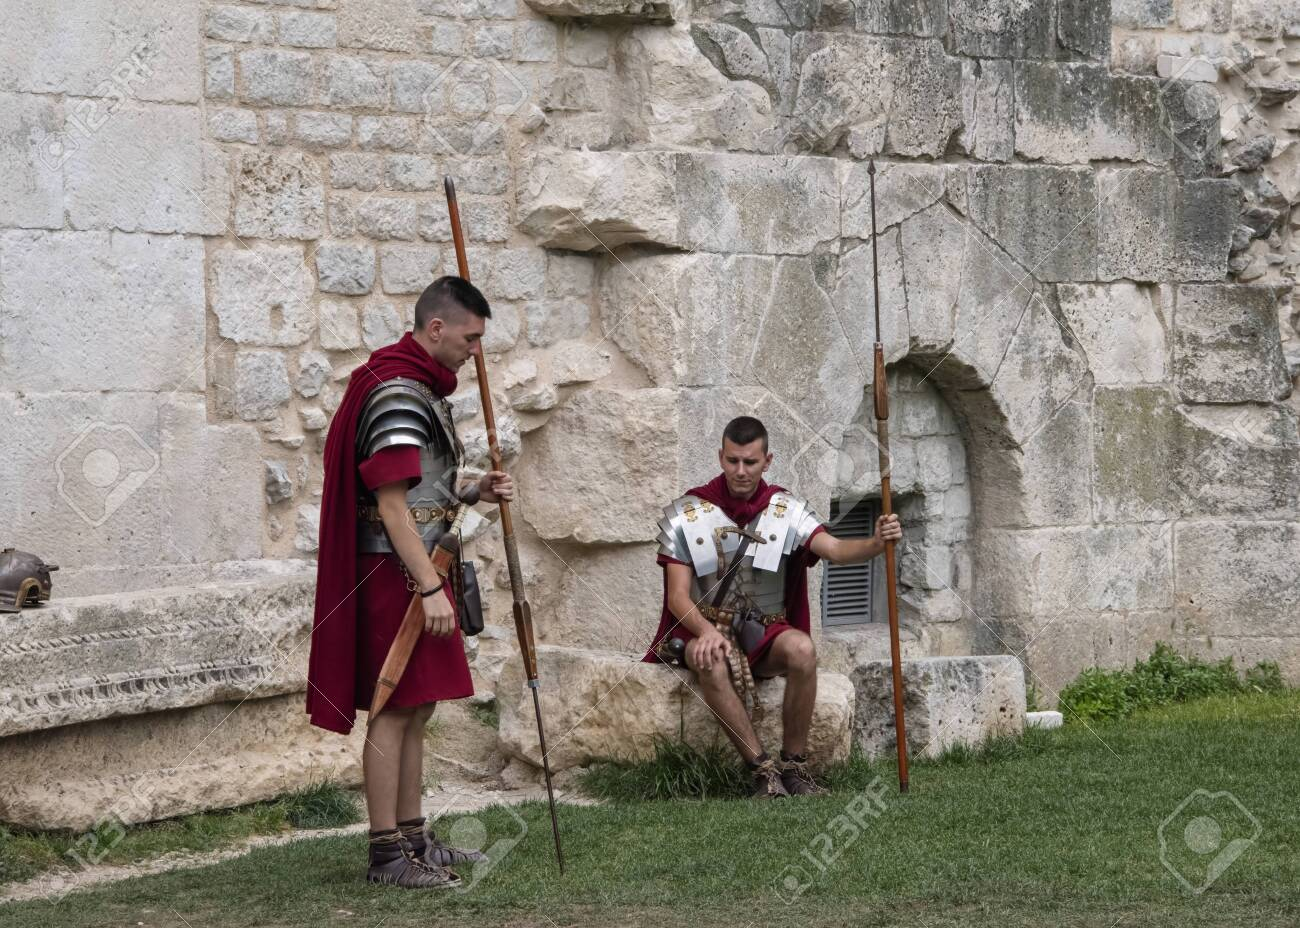 119471174-croatia-split-june-2018-re-enactors-dressed-as-roman-legionnaires-wait-to-pose-with-...jpg